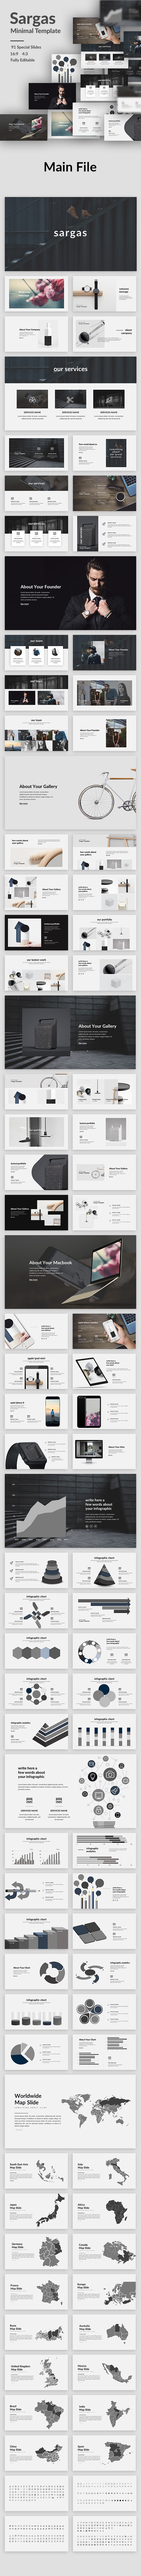 Sargas - Minimal Powerpoint Template - Creative PowerPoint Templates